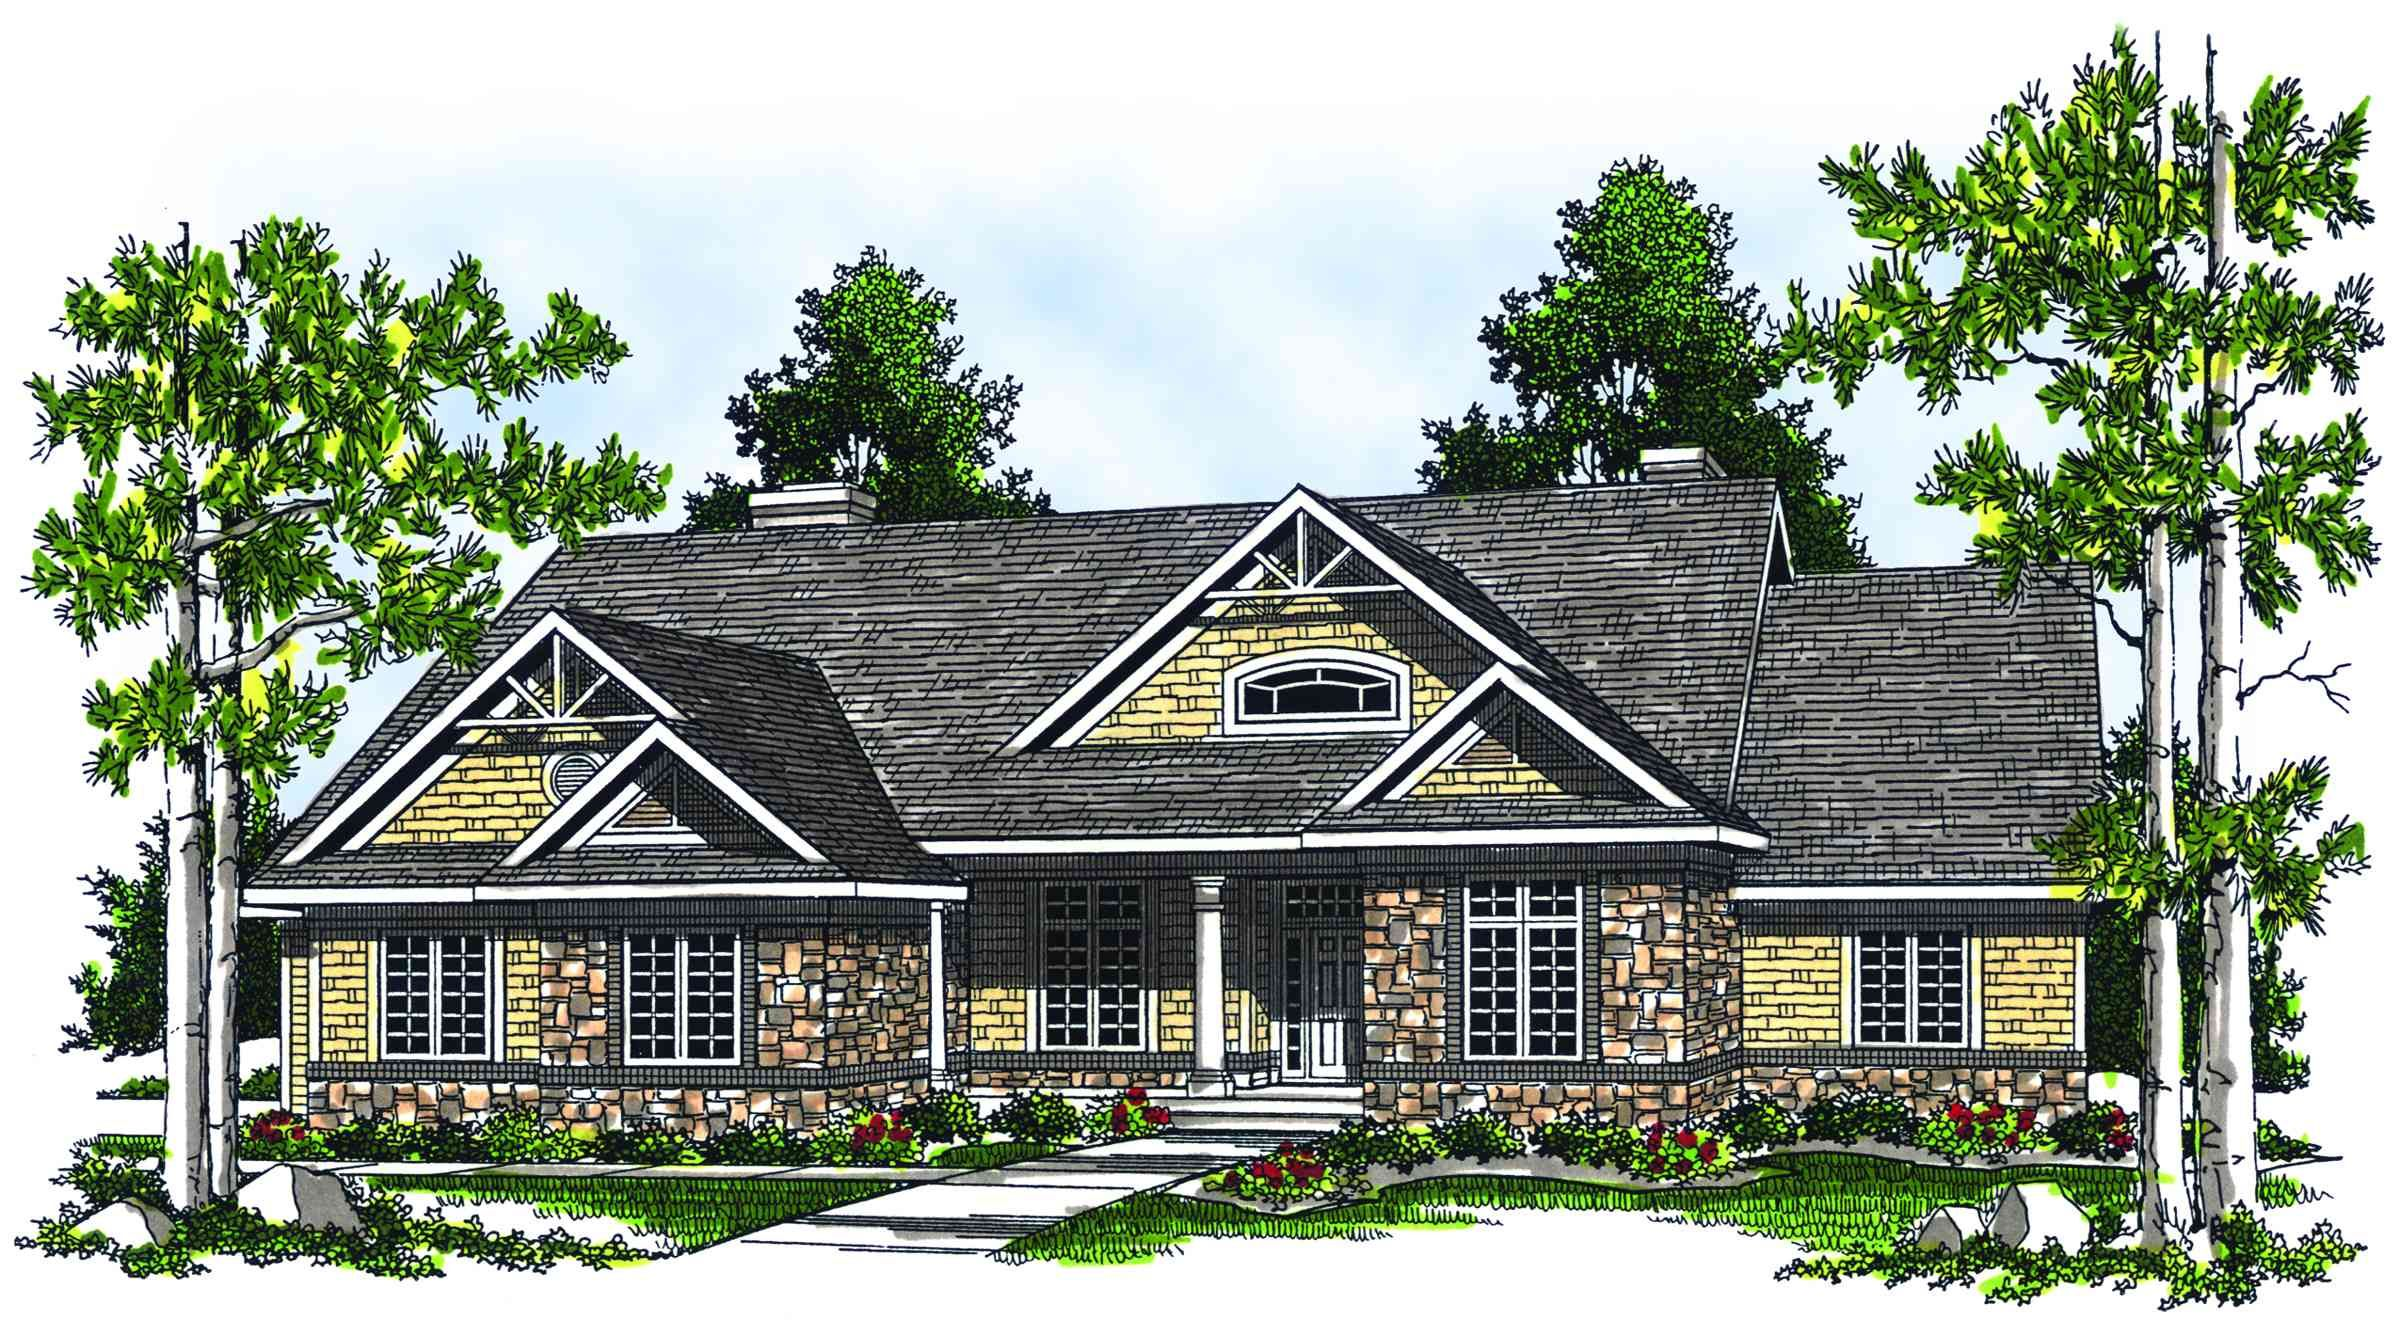 Plan 89076ah Rustic Ranch Country Style House Plans Craftsman Style House Plans Cottage House Plans